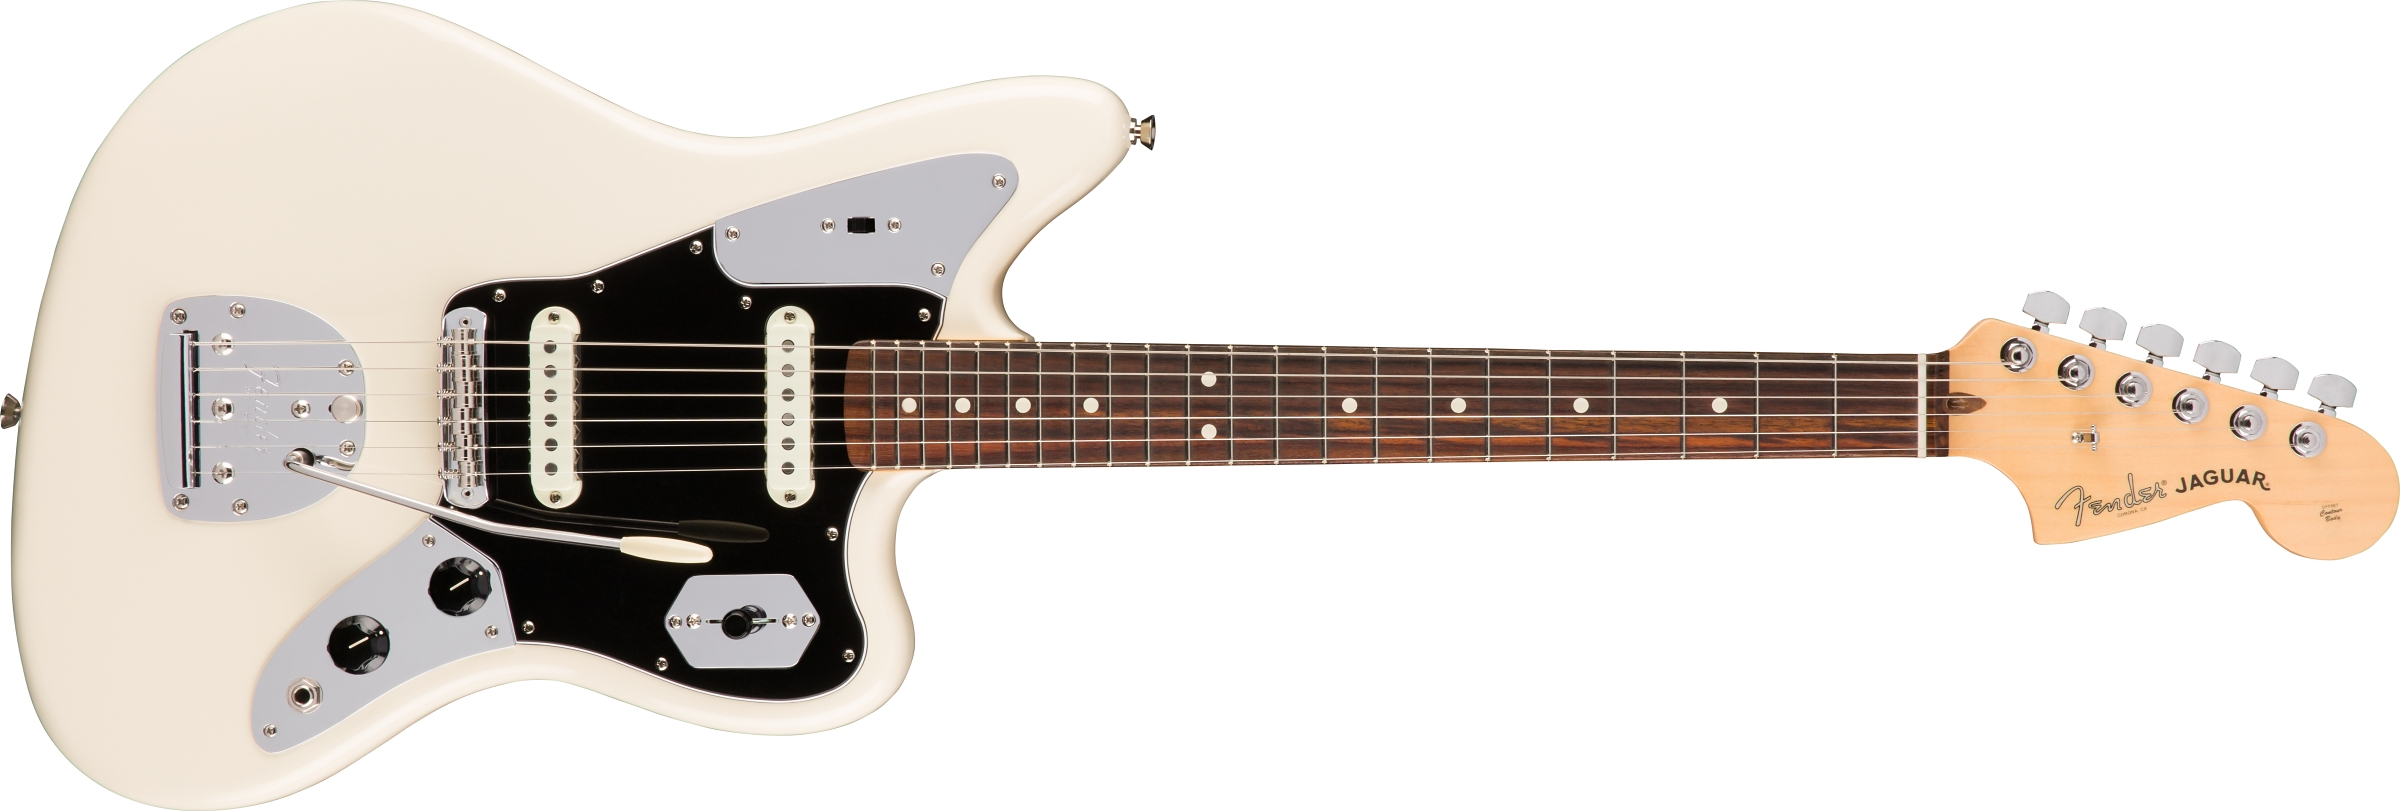 body fender product candy squier jaguar vintage apple mod by red